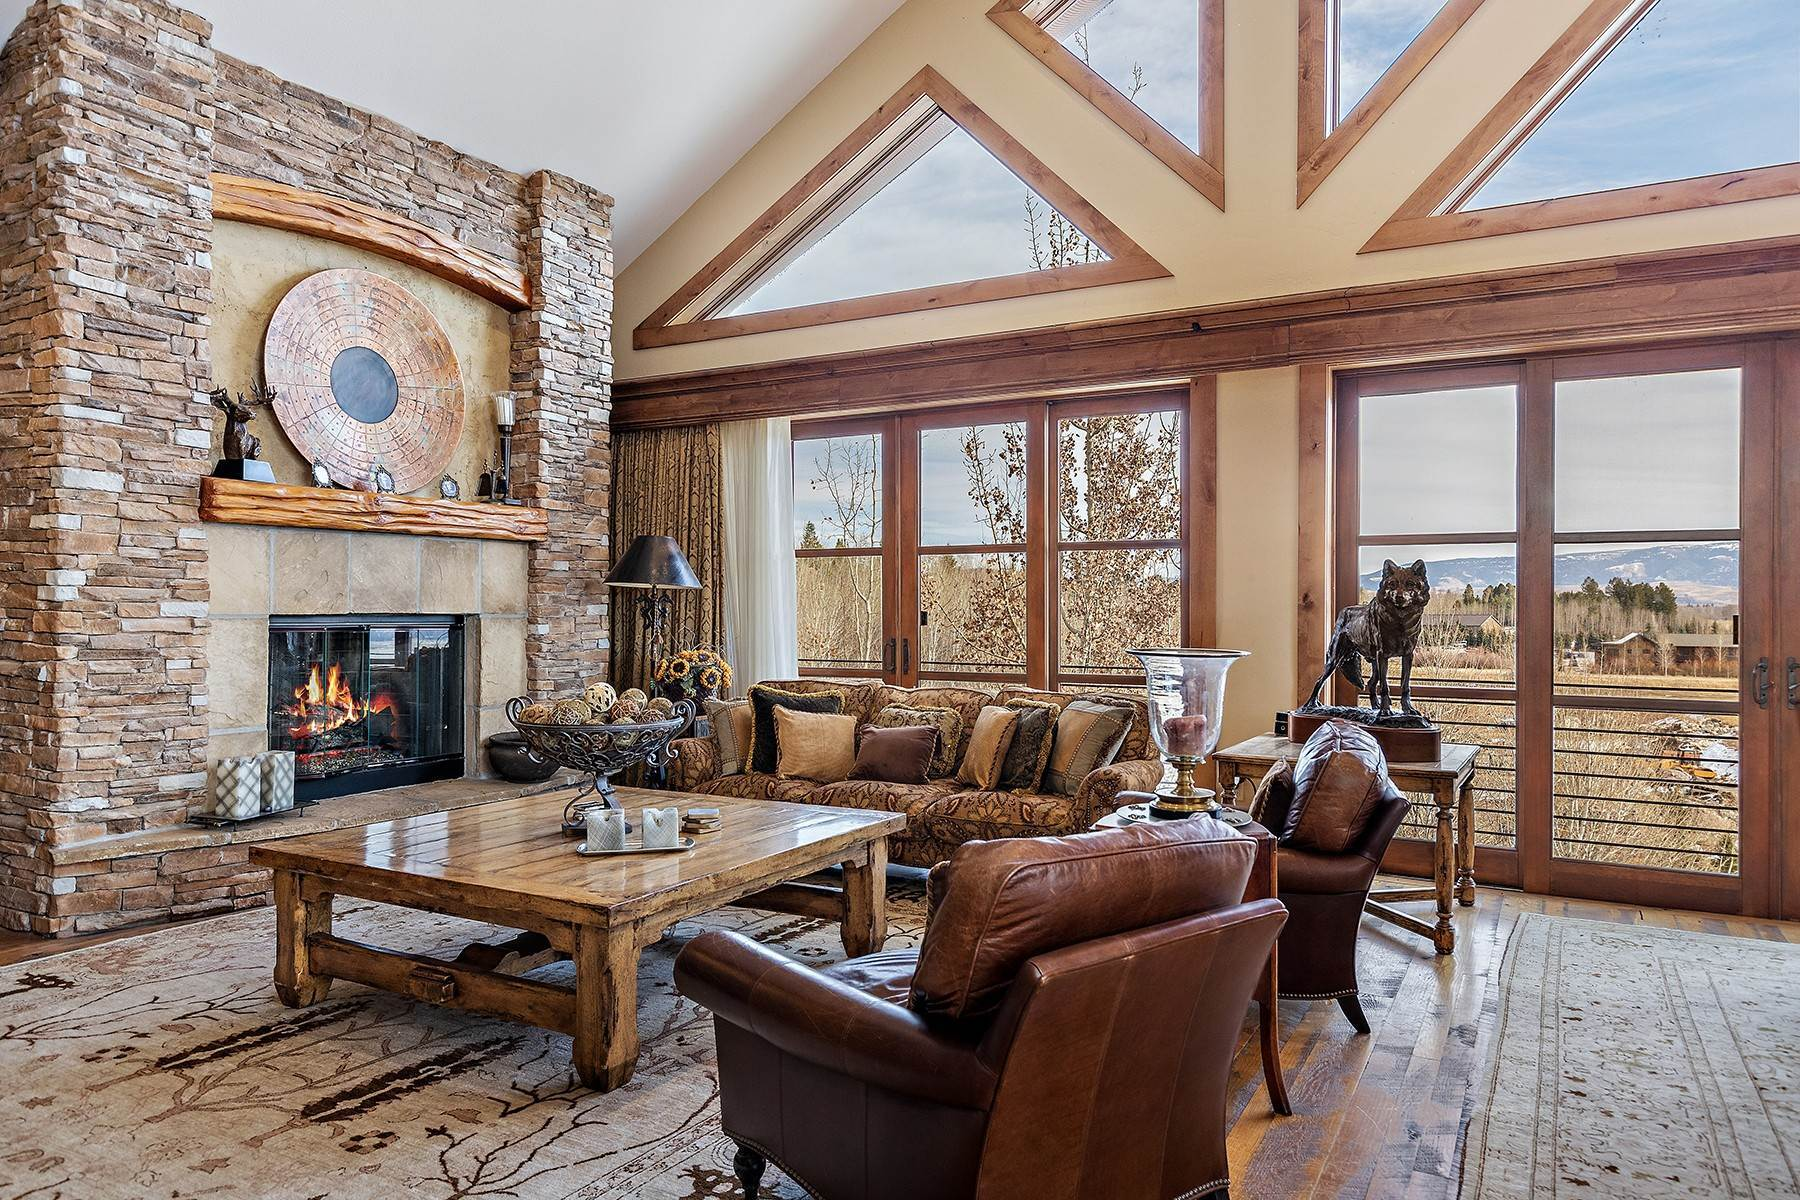 Condominiums for Sale at Ski-in/ski-out Penthouse Residence 7710 Granite Loop Road, #41 Teton Village, Wyoming 83025 United States